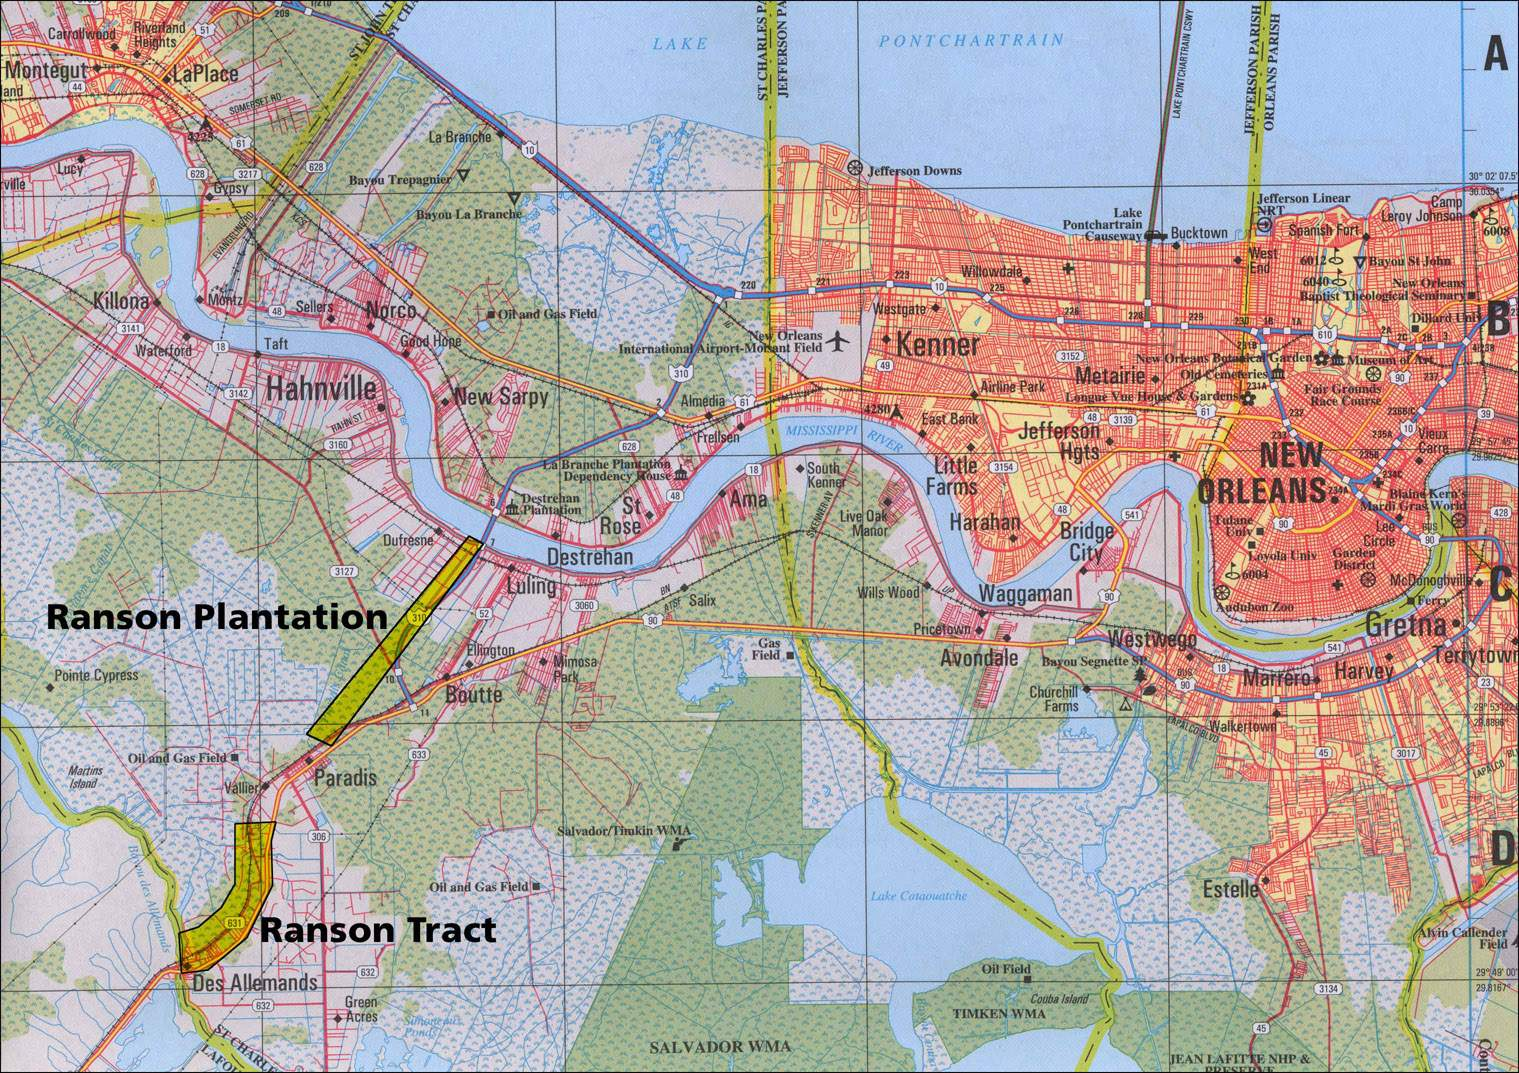 Large New Orleans Maps For Free Download And Print High - New orleans in map of usa